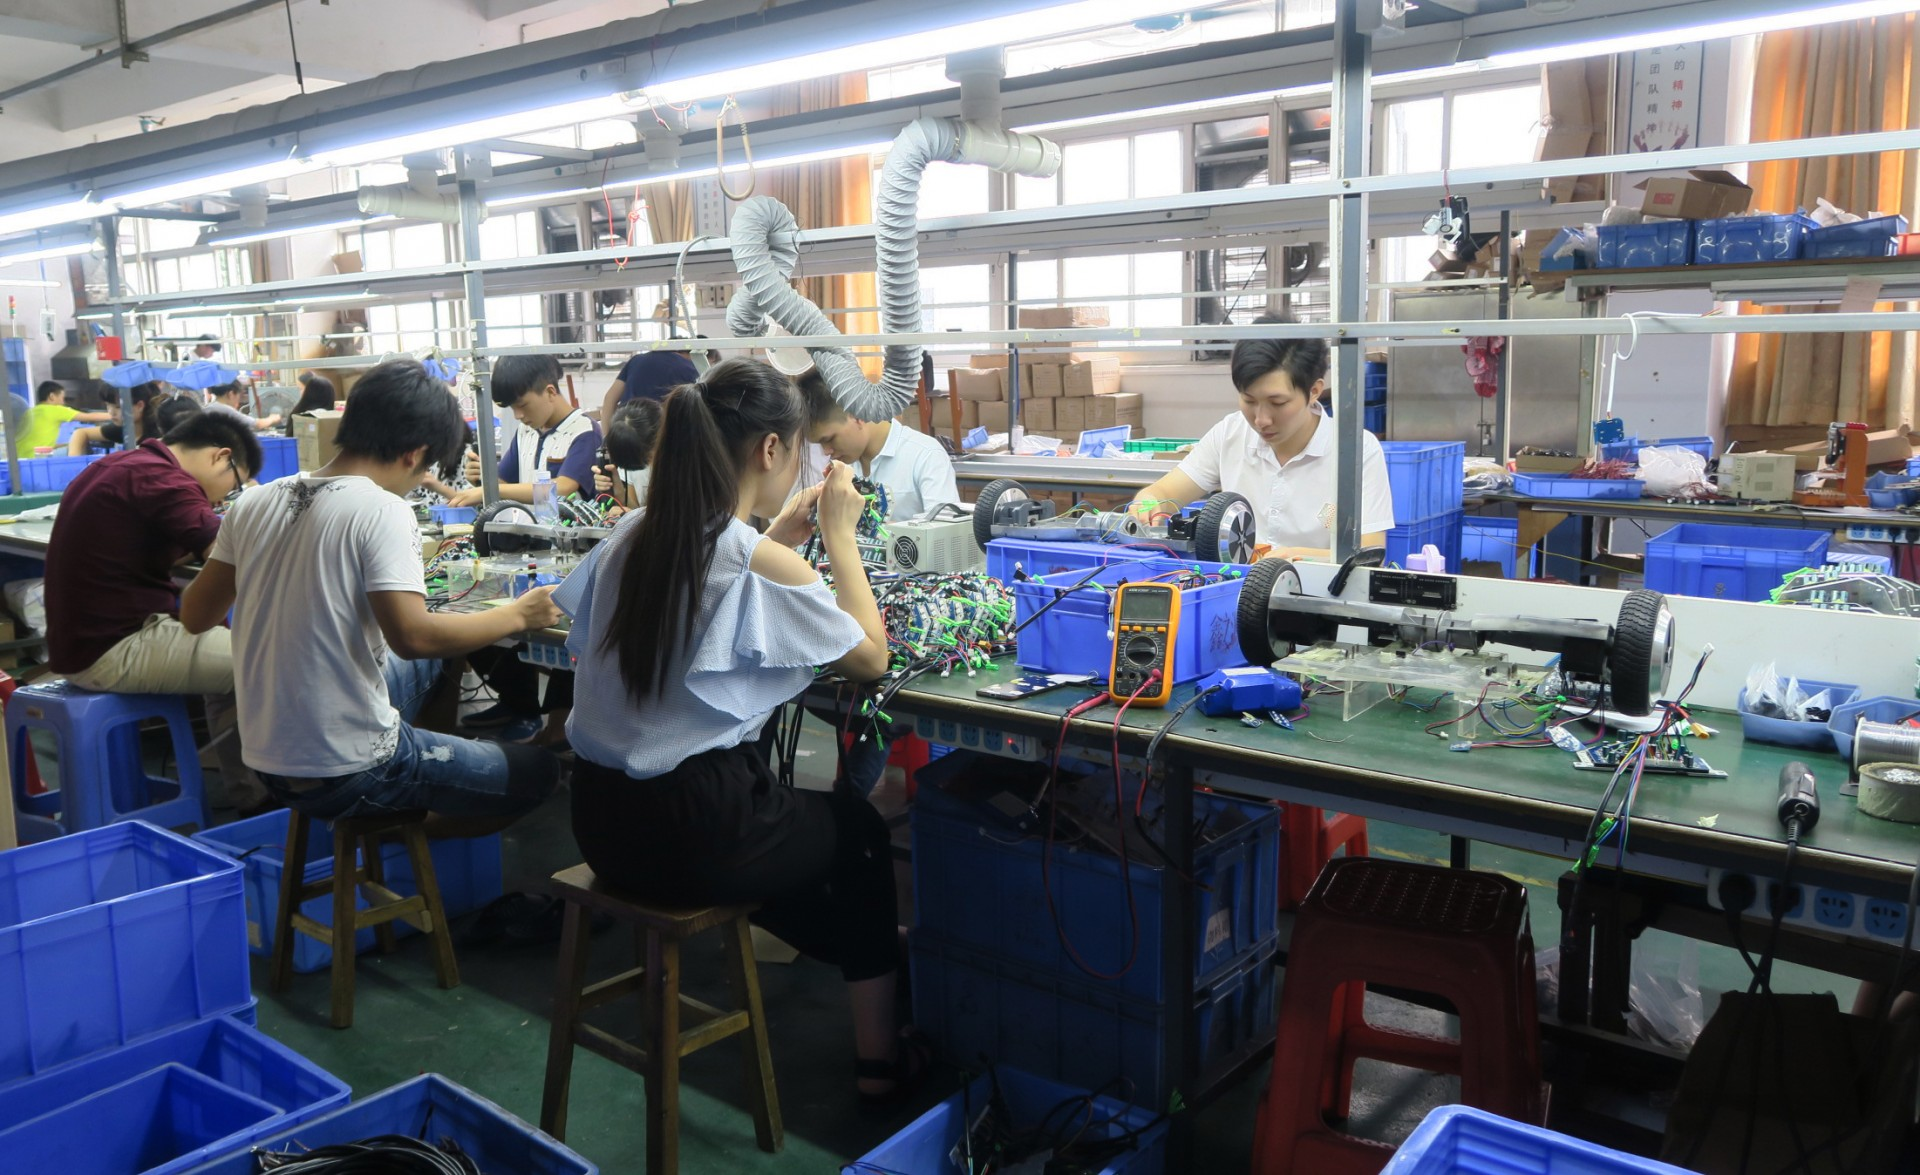 Shenzhen's Small Factories Partner With Startups As